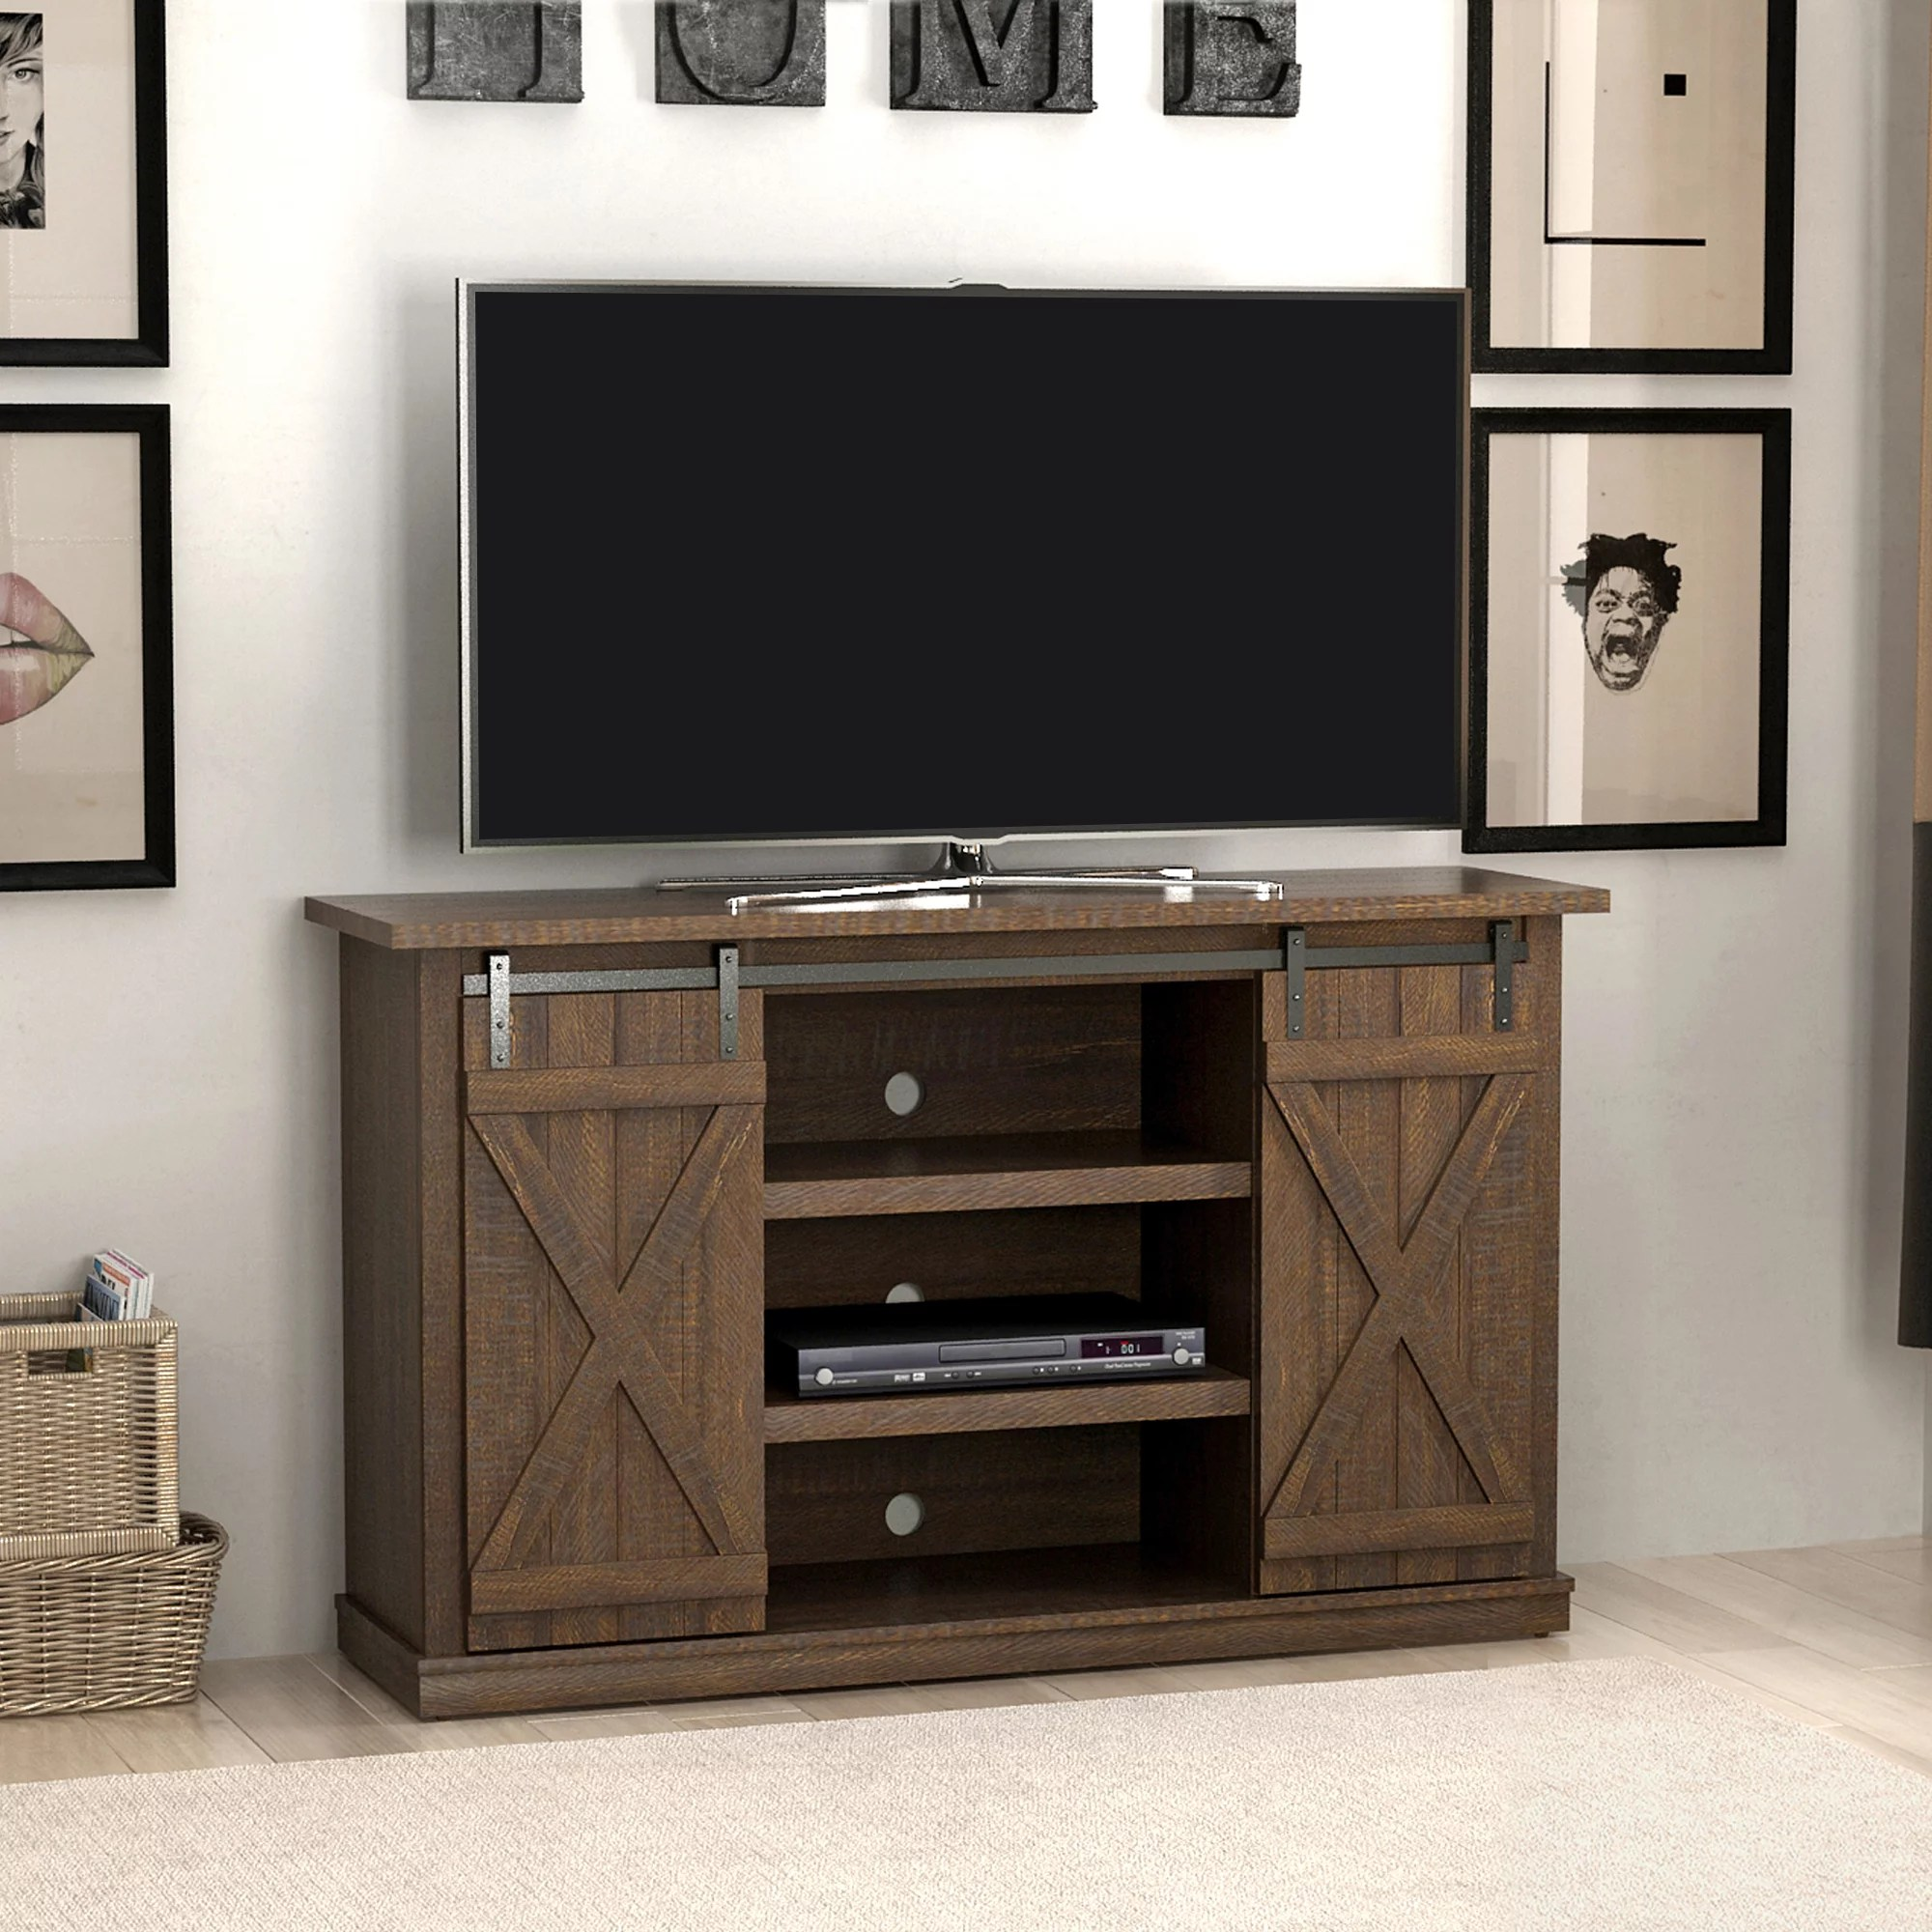 Tall Entertainment Centers For Flat Screen